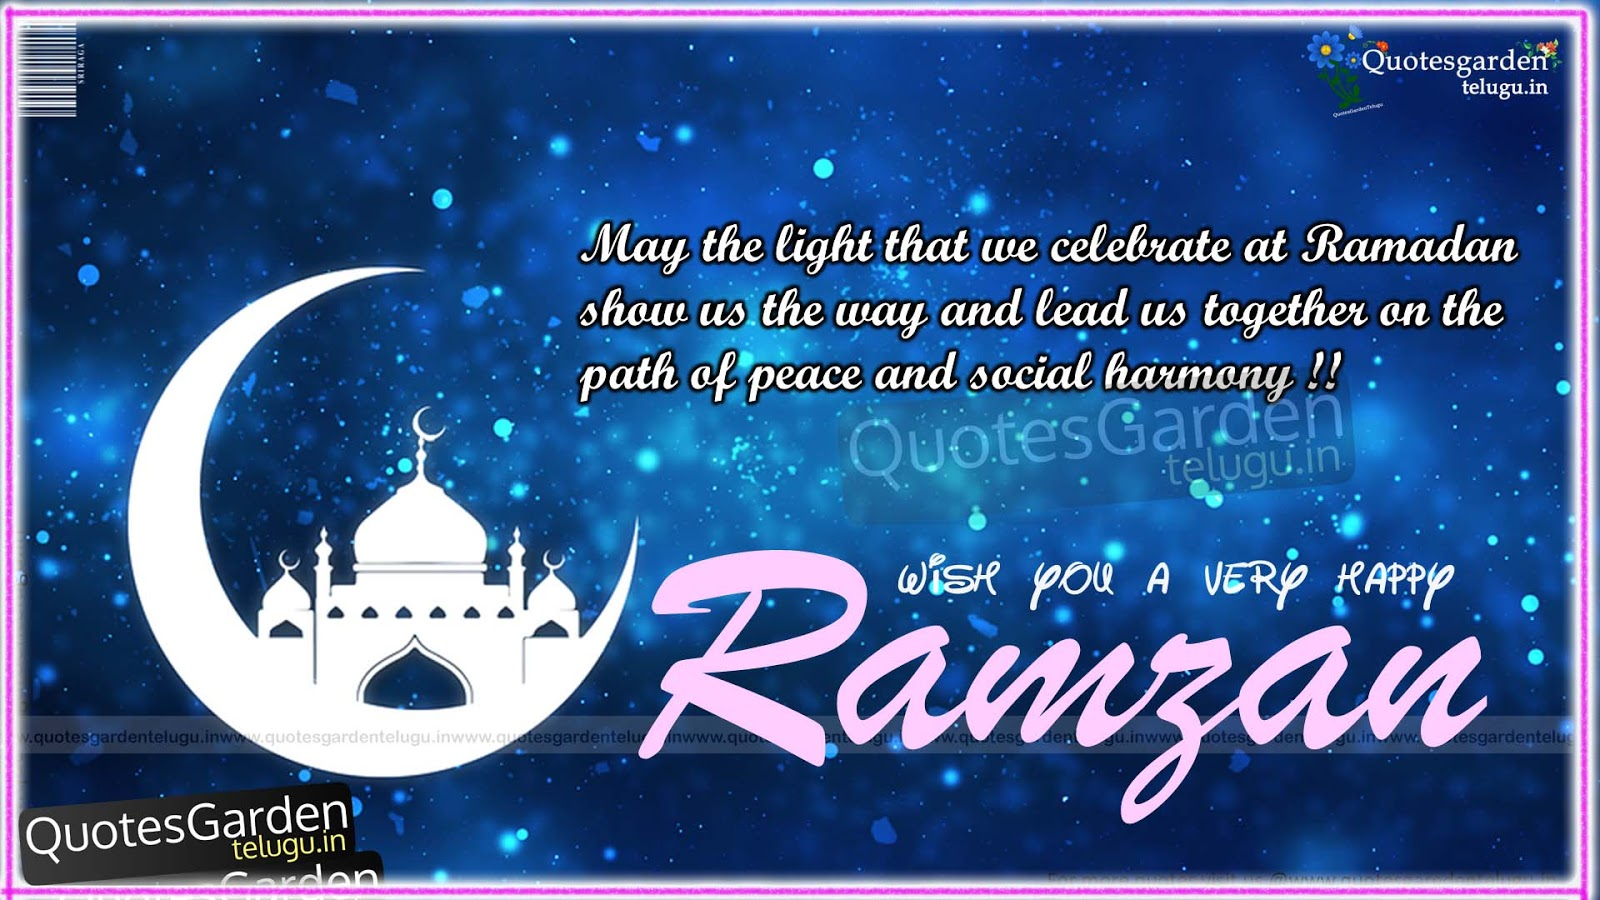 Happy ramadan greetings wishes messages quotes garden telugu happy ramadan greetings wishes messages m4hsunfo